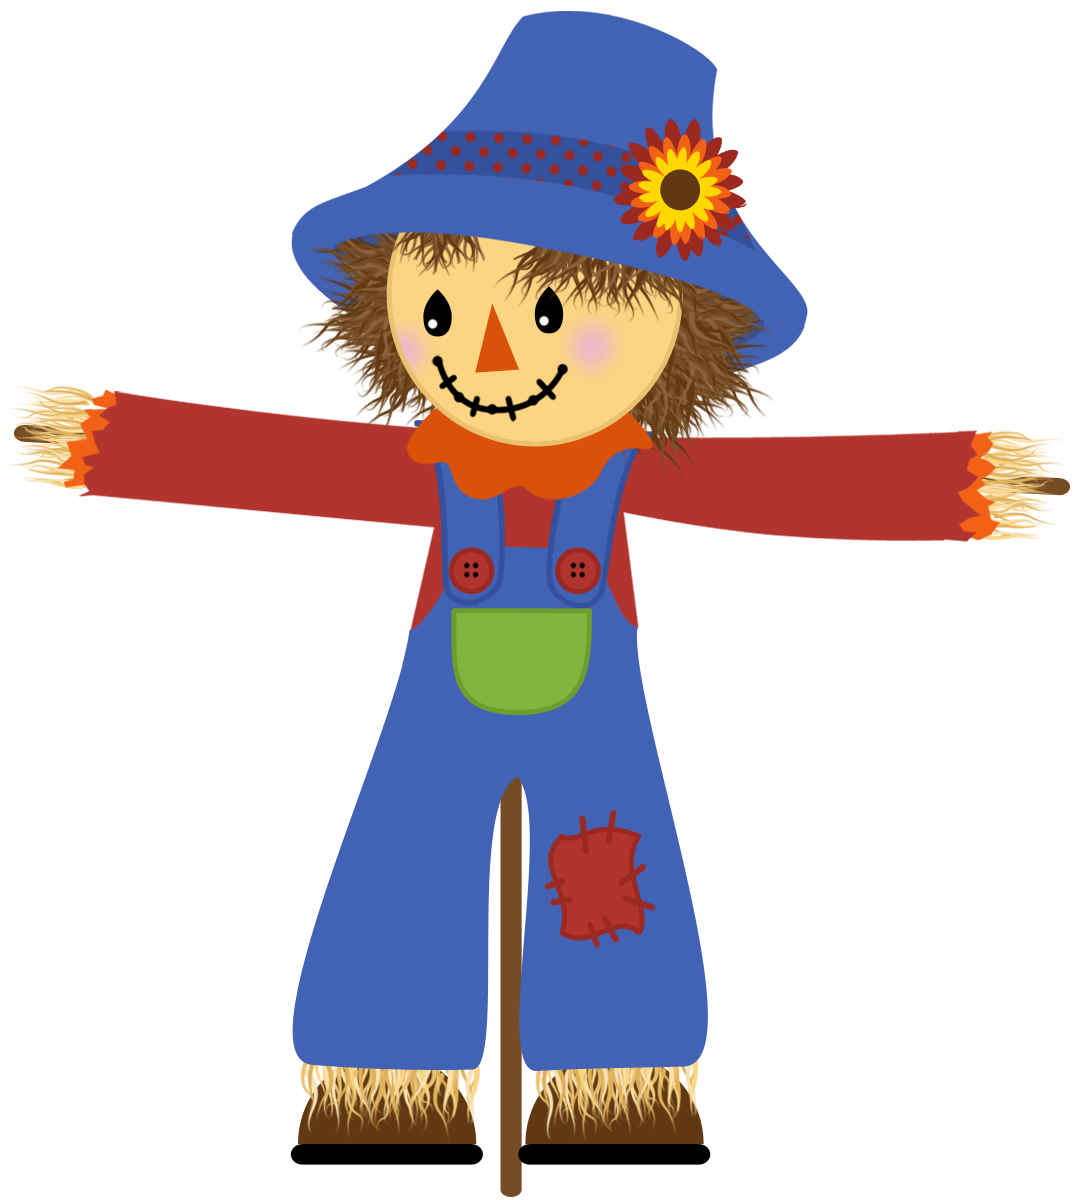 Book character dress up clipart png free download scarecrow clipart - Google Search | Signage | Pinterest | Scarecrows ... png free download